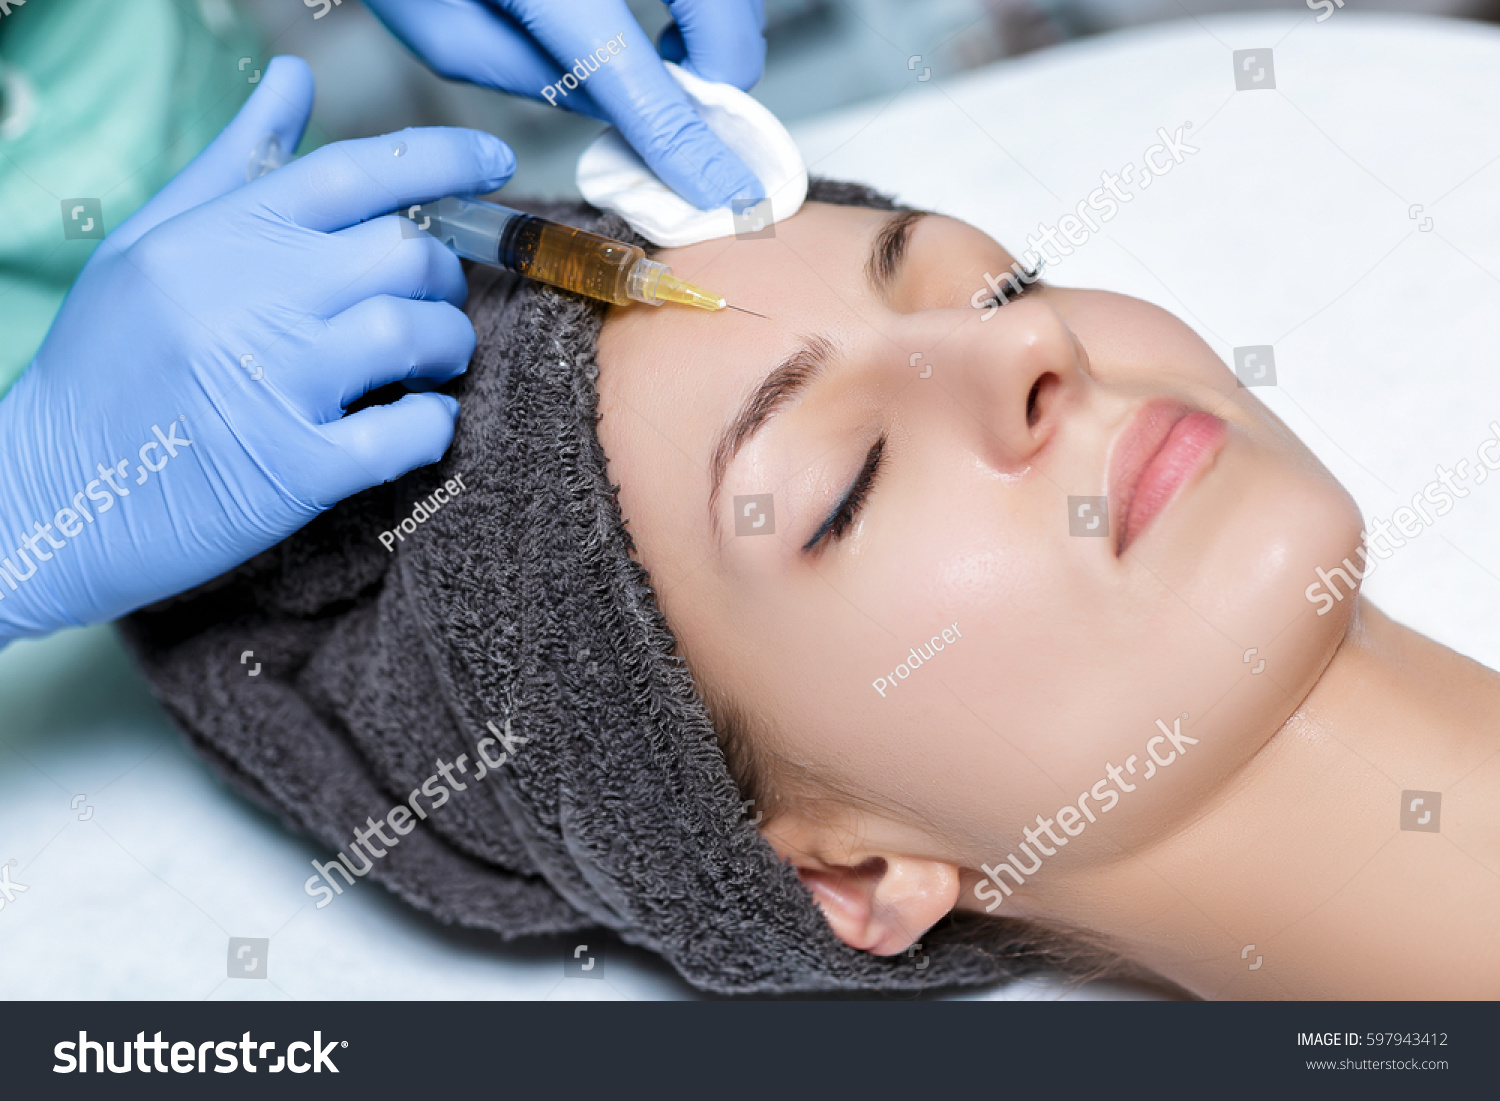 procedure Plasmolifting injection. plasma injection into the skin of the forehead of the patient #597943412